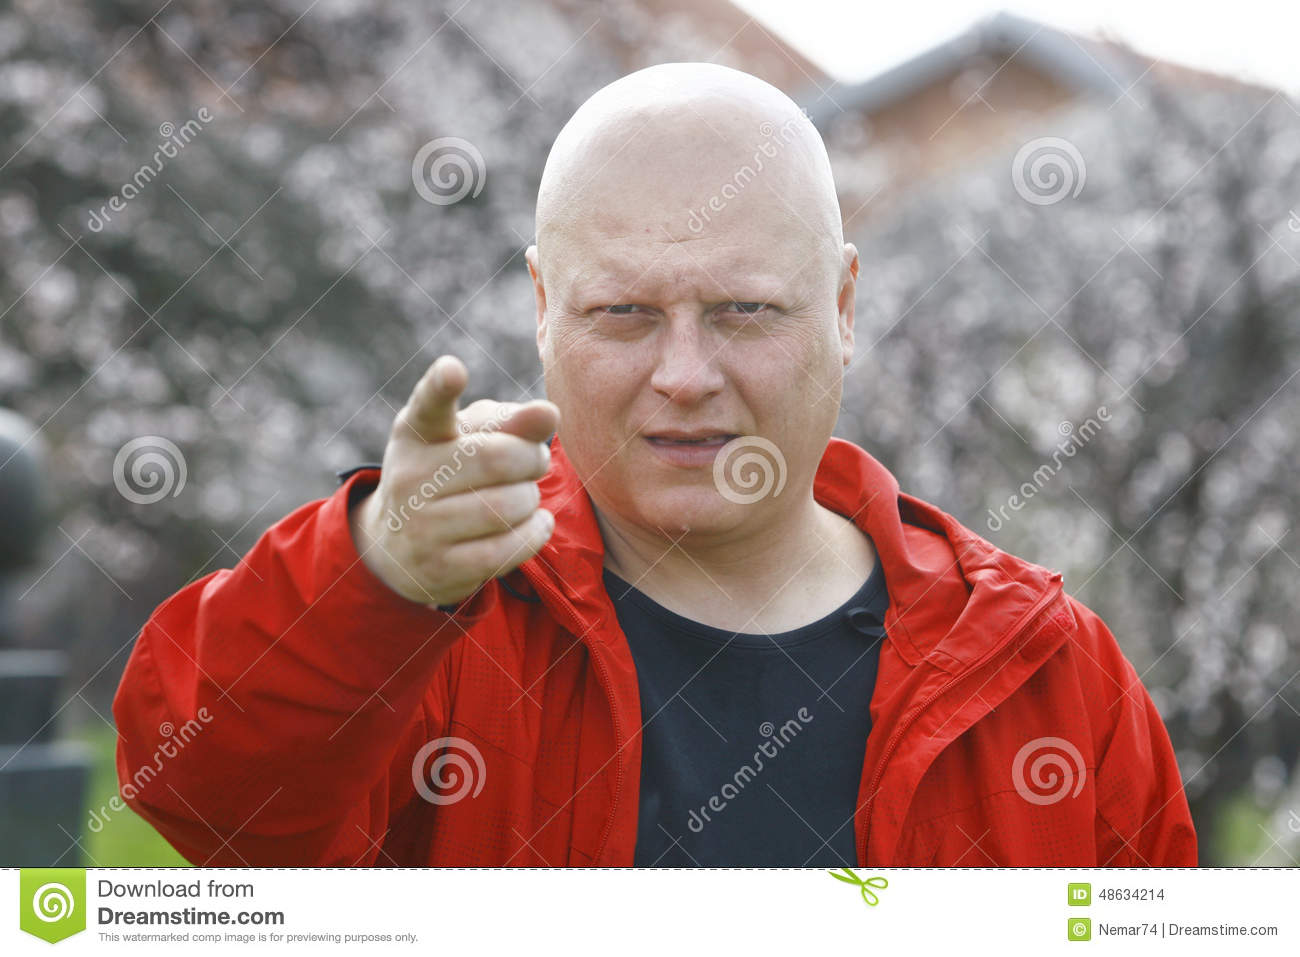 Man In A Red Jacket Threatening With Finger And Alerts